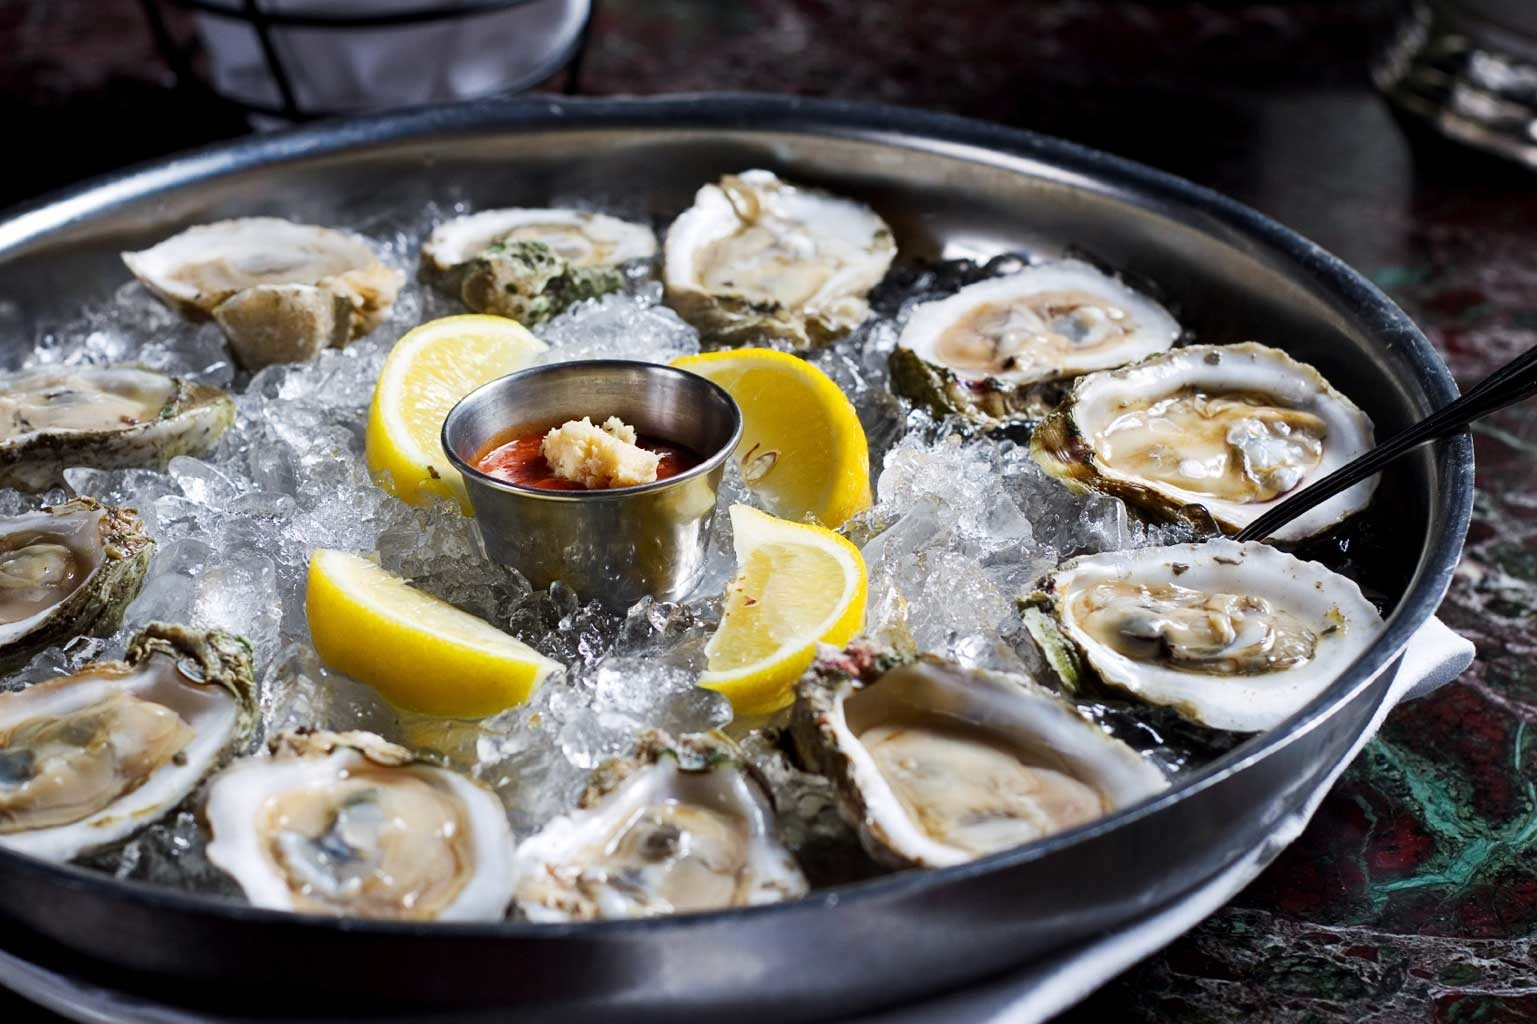 Dining Drink Eat Trip Ideas food dish indoor Seafood oyster mussel clam cuisine fish invertebrate animal source foods clams oysters mussels and scallops cockle pan cooking